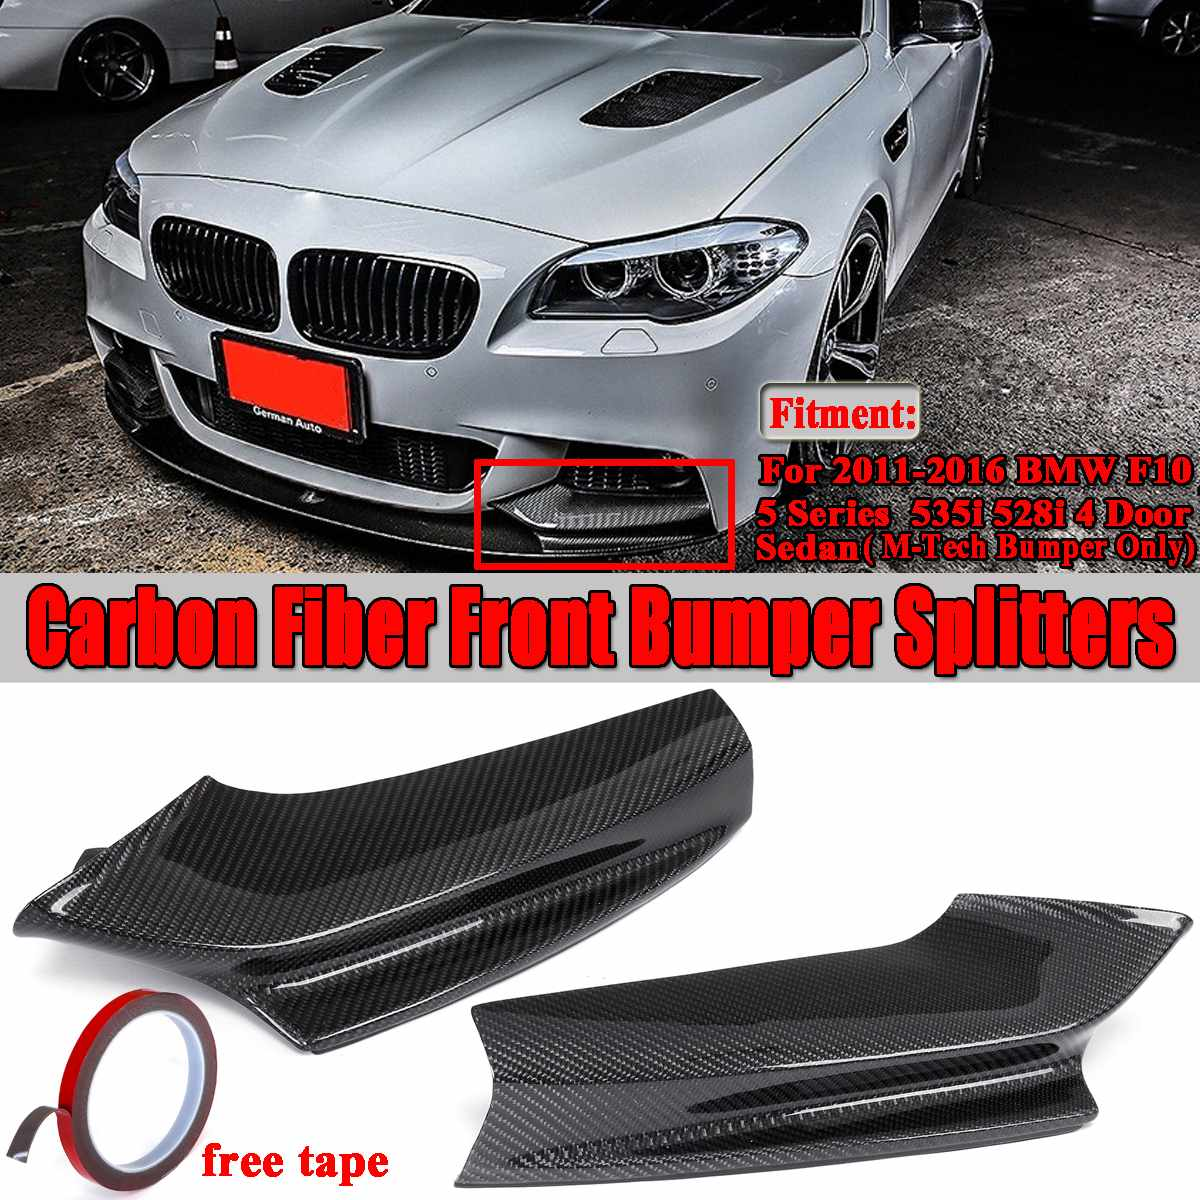 Real Carbon Fiber Car Front <font><b>Bumper</b></font> Lip Splitters Diffuser Spoiler Guard For <font><b>BMW</b></font> <font><b>F10</b></font> 5 Series 535i 528i M Sport Sedan 2011-2016 image